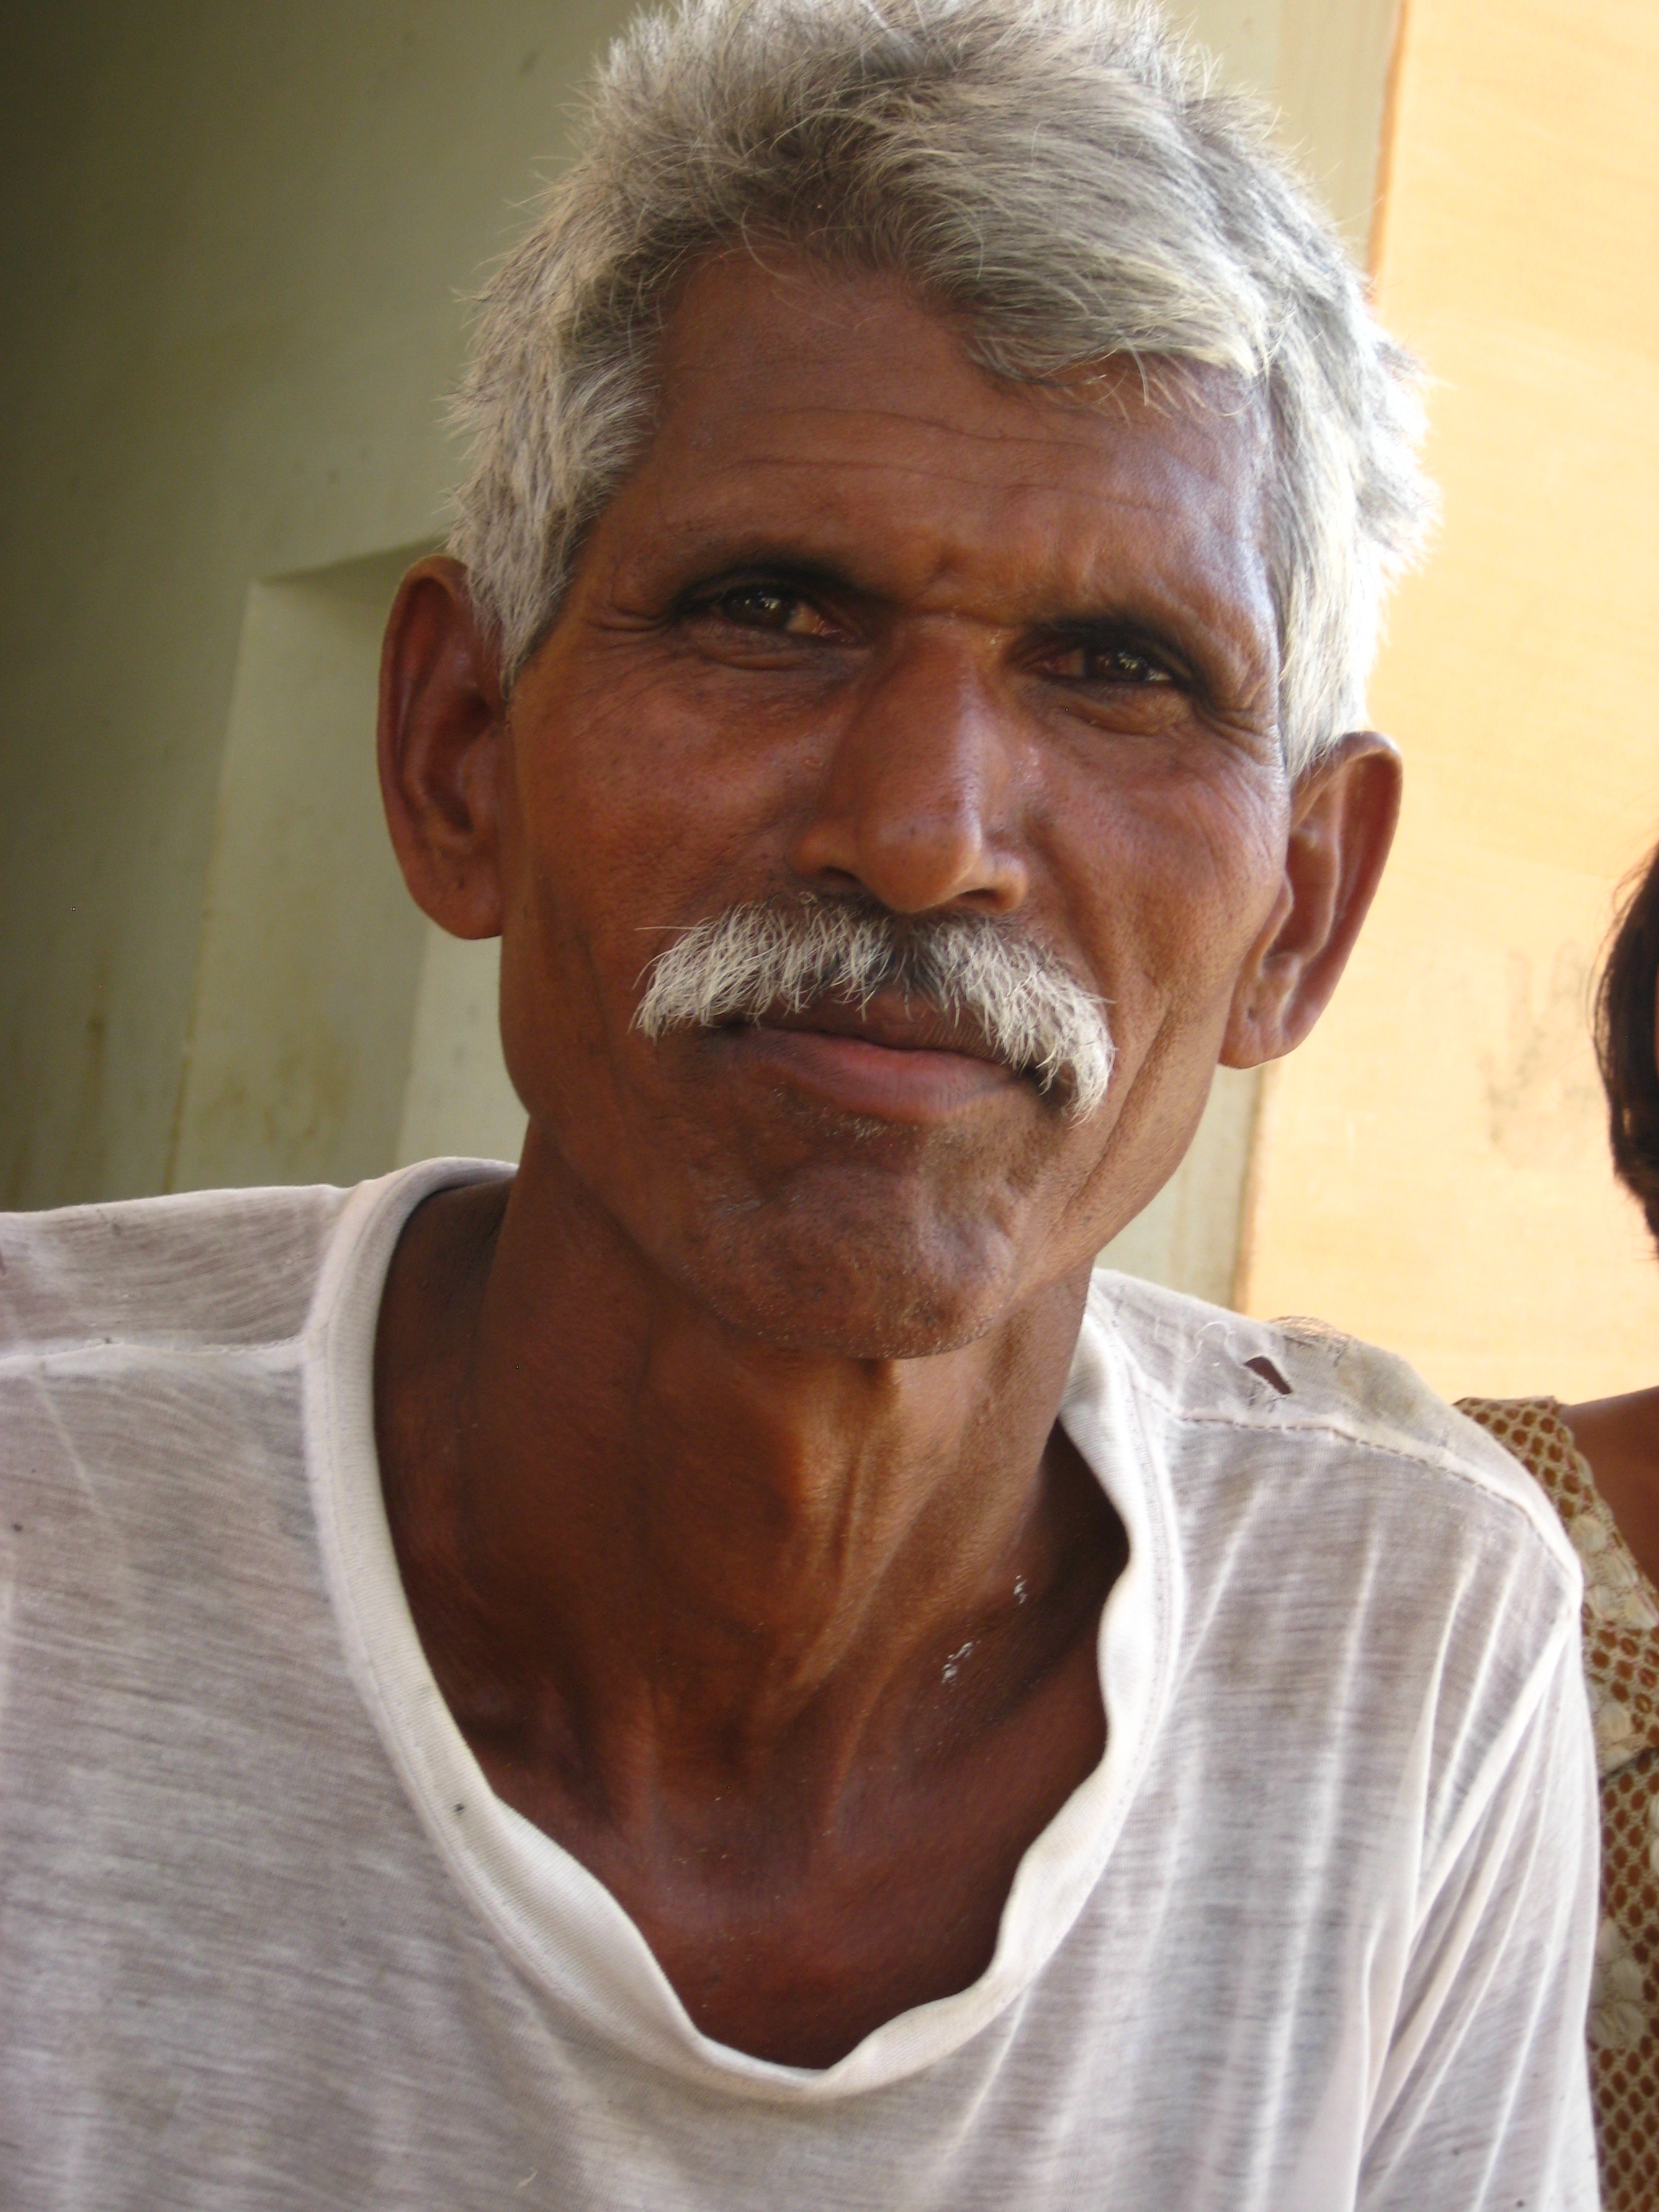 Older man in t-shirt with gray hair and mustache